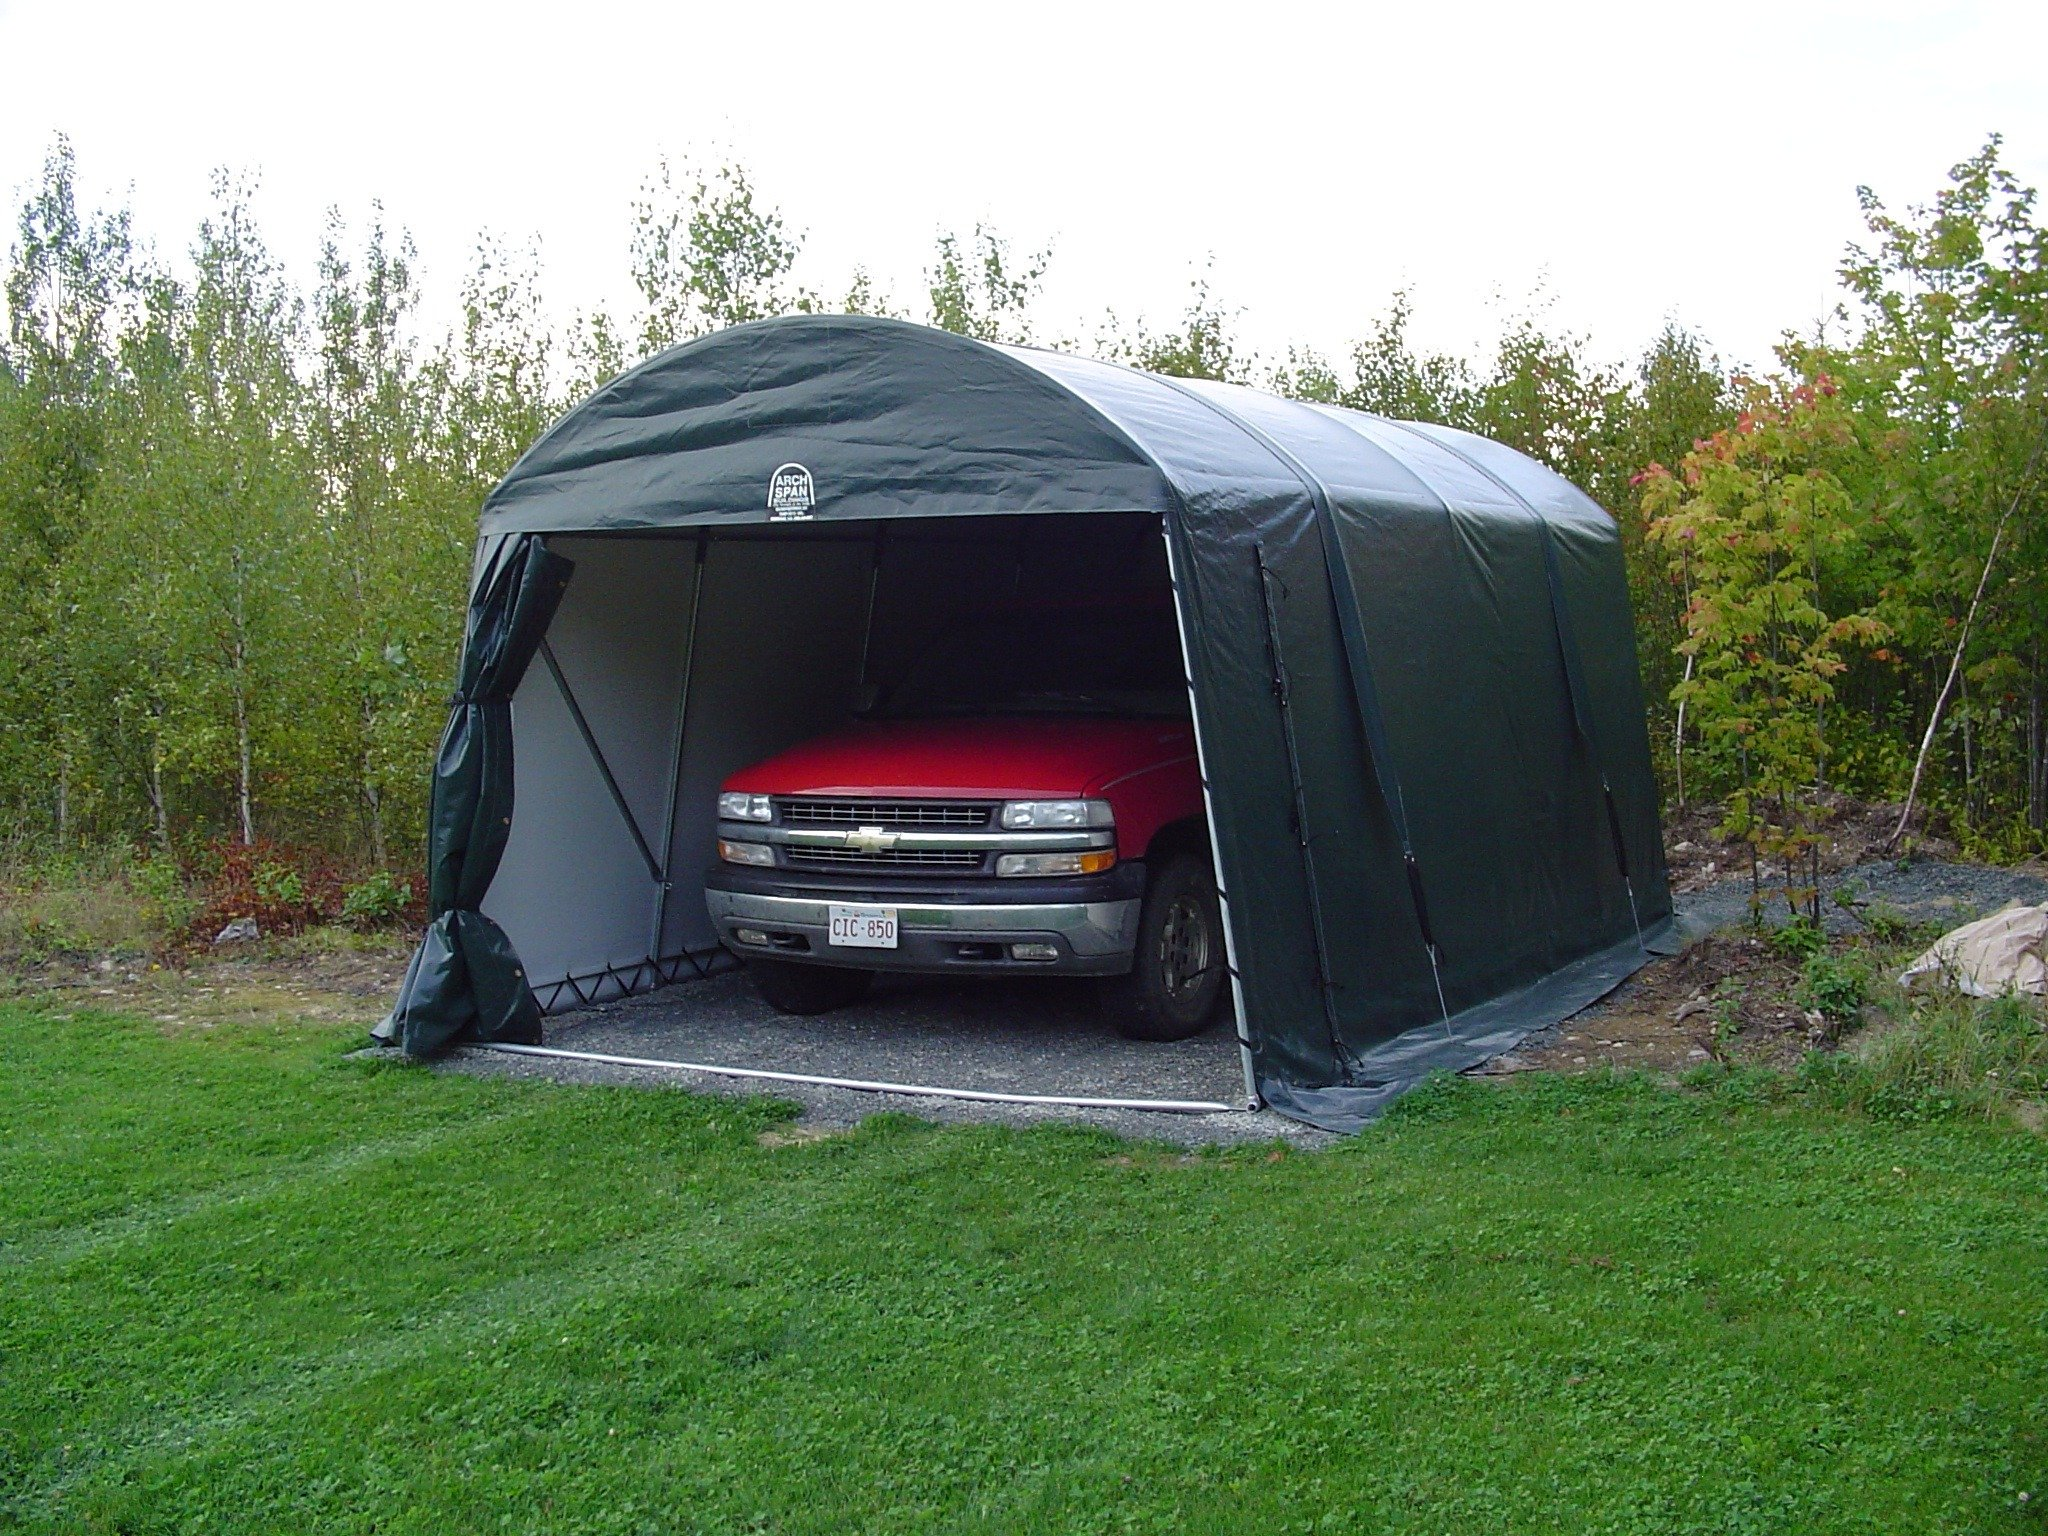 SINGLE CAR GARAGE cover-tech inc. call toll free 1-888-325-5757